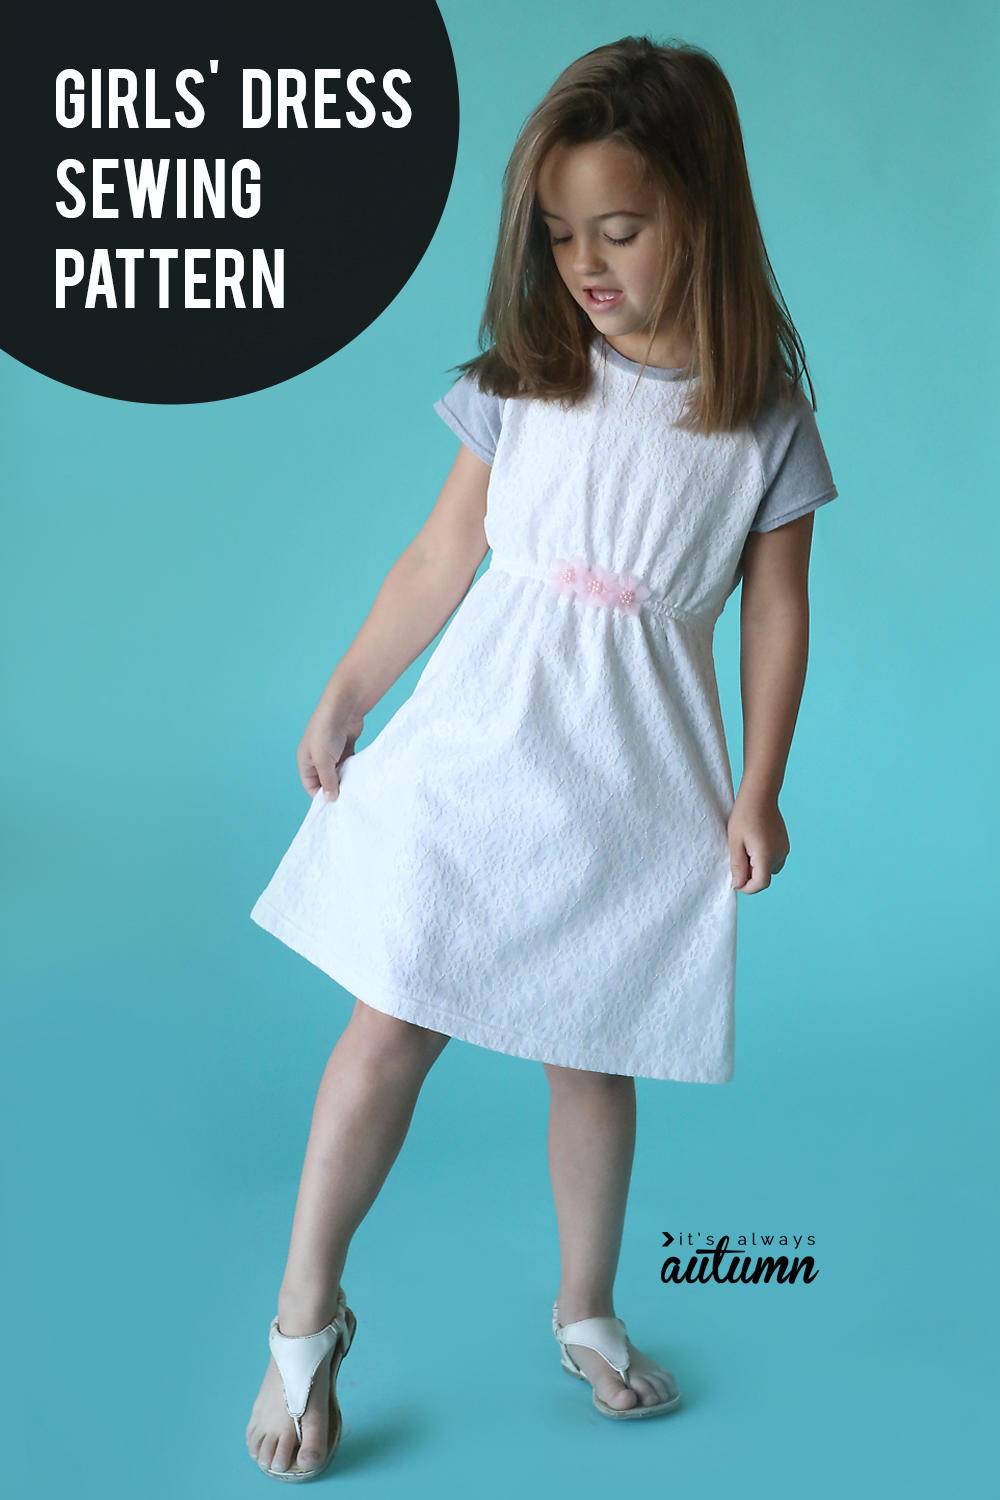 Click through for the free sewing pattern for this cute girls' dress.